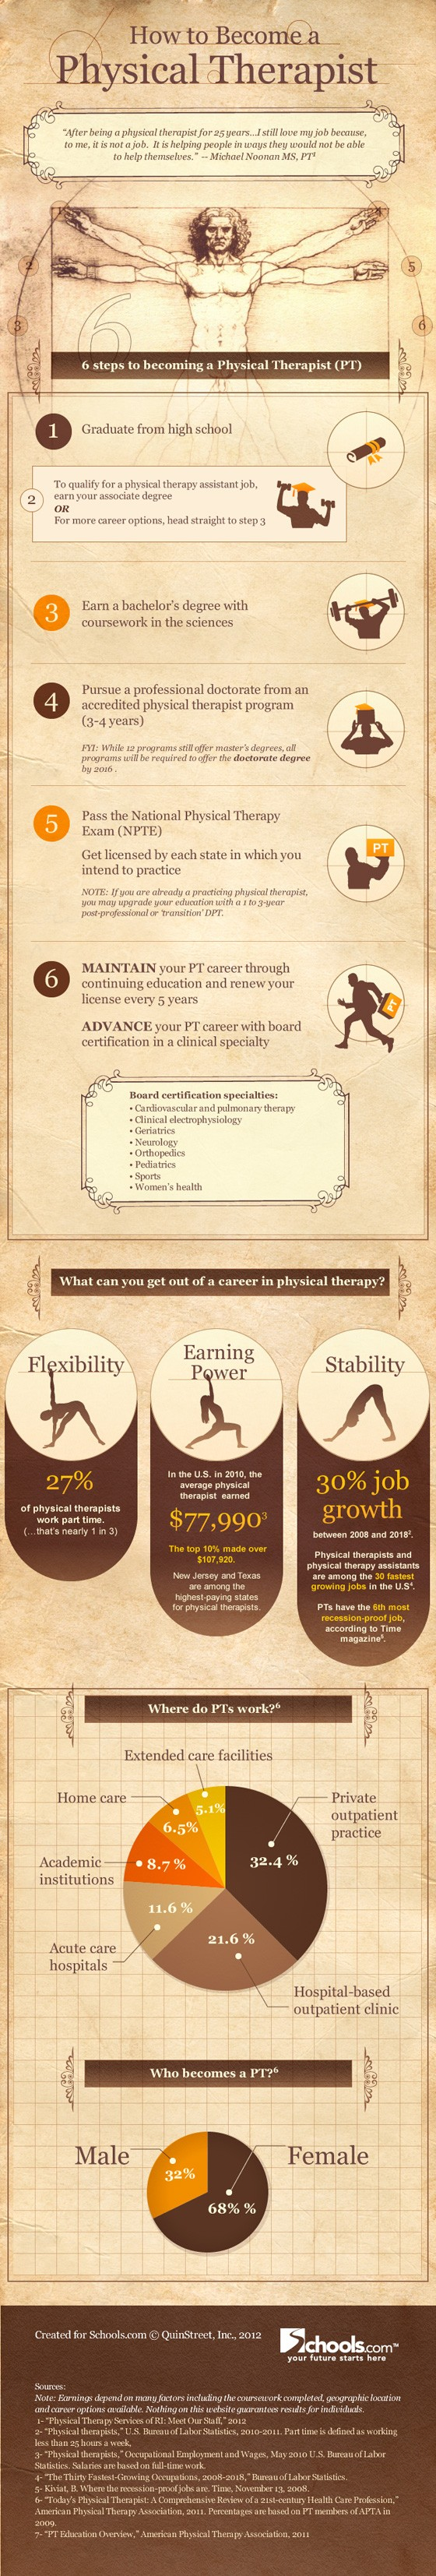 Physical Therapist What It Takes to be a DPT Physical